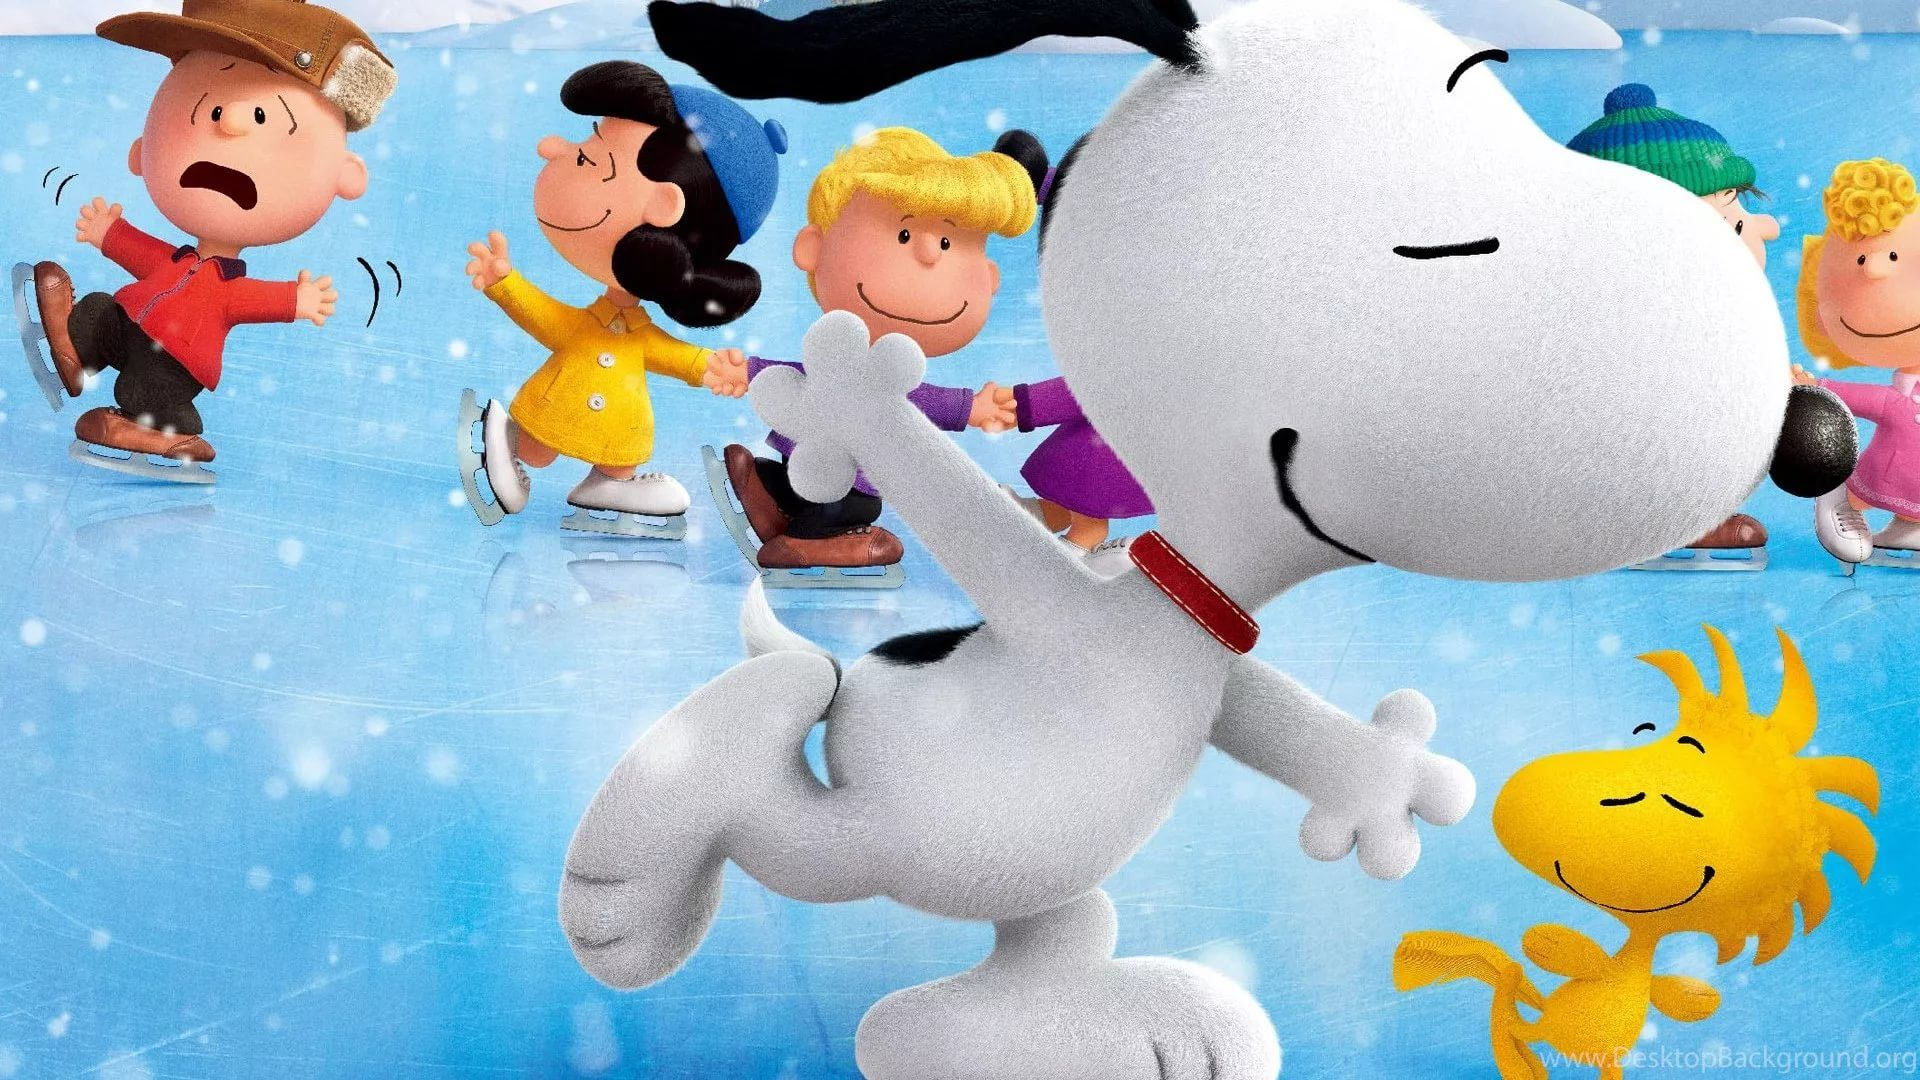 Peanuts download free wallpapers for pc in hd